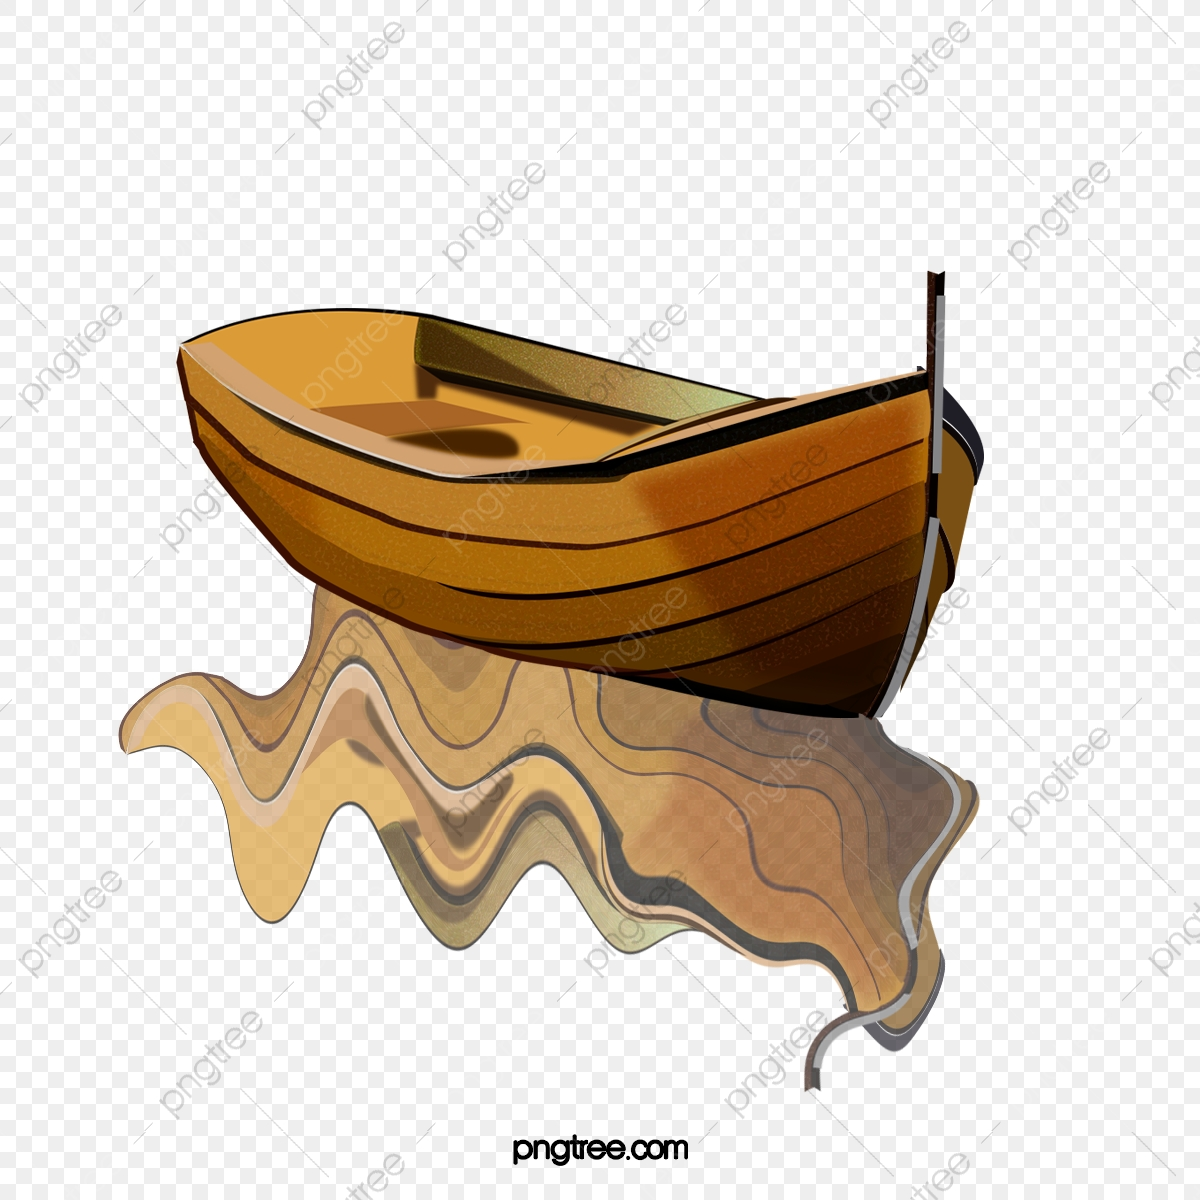 Wooden Boat Fishing Boat Boating Png Transparent Clipart Image And Psd File For Free Download